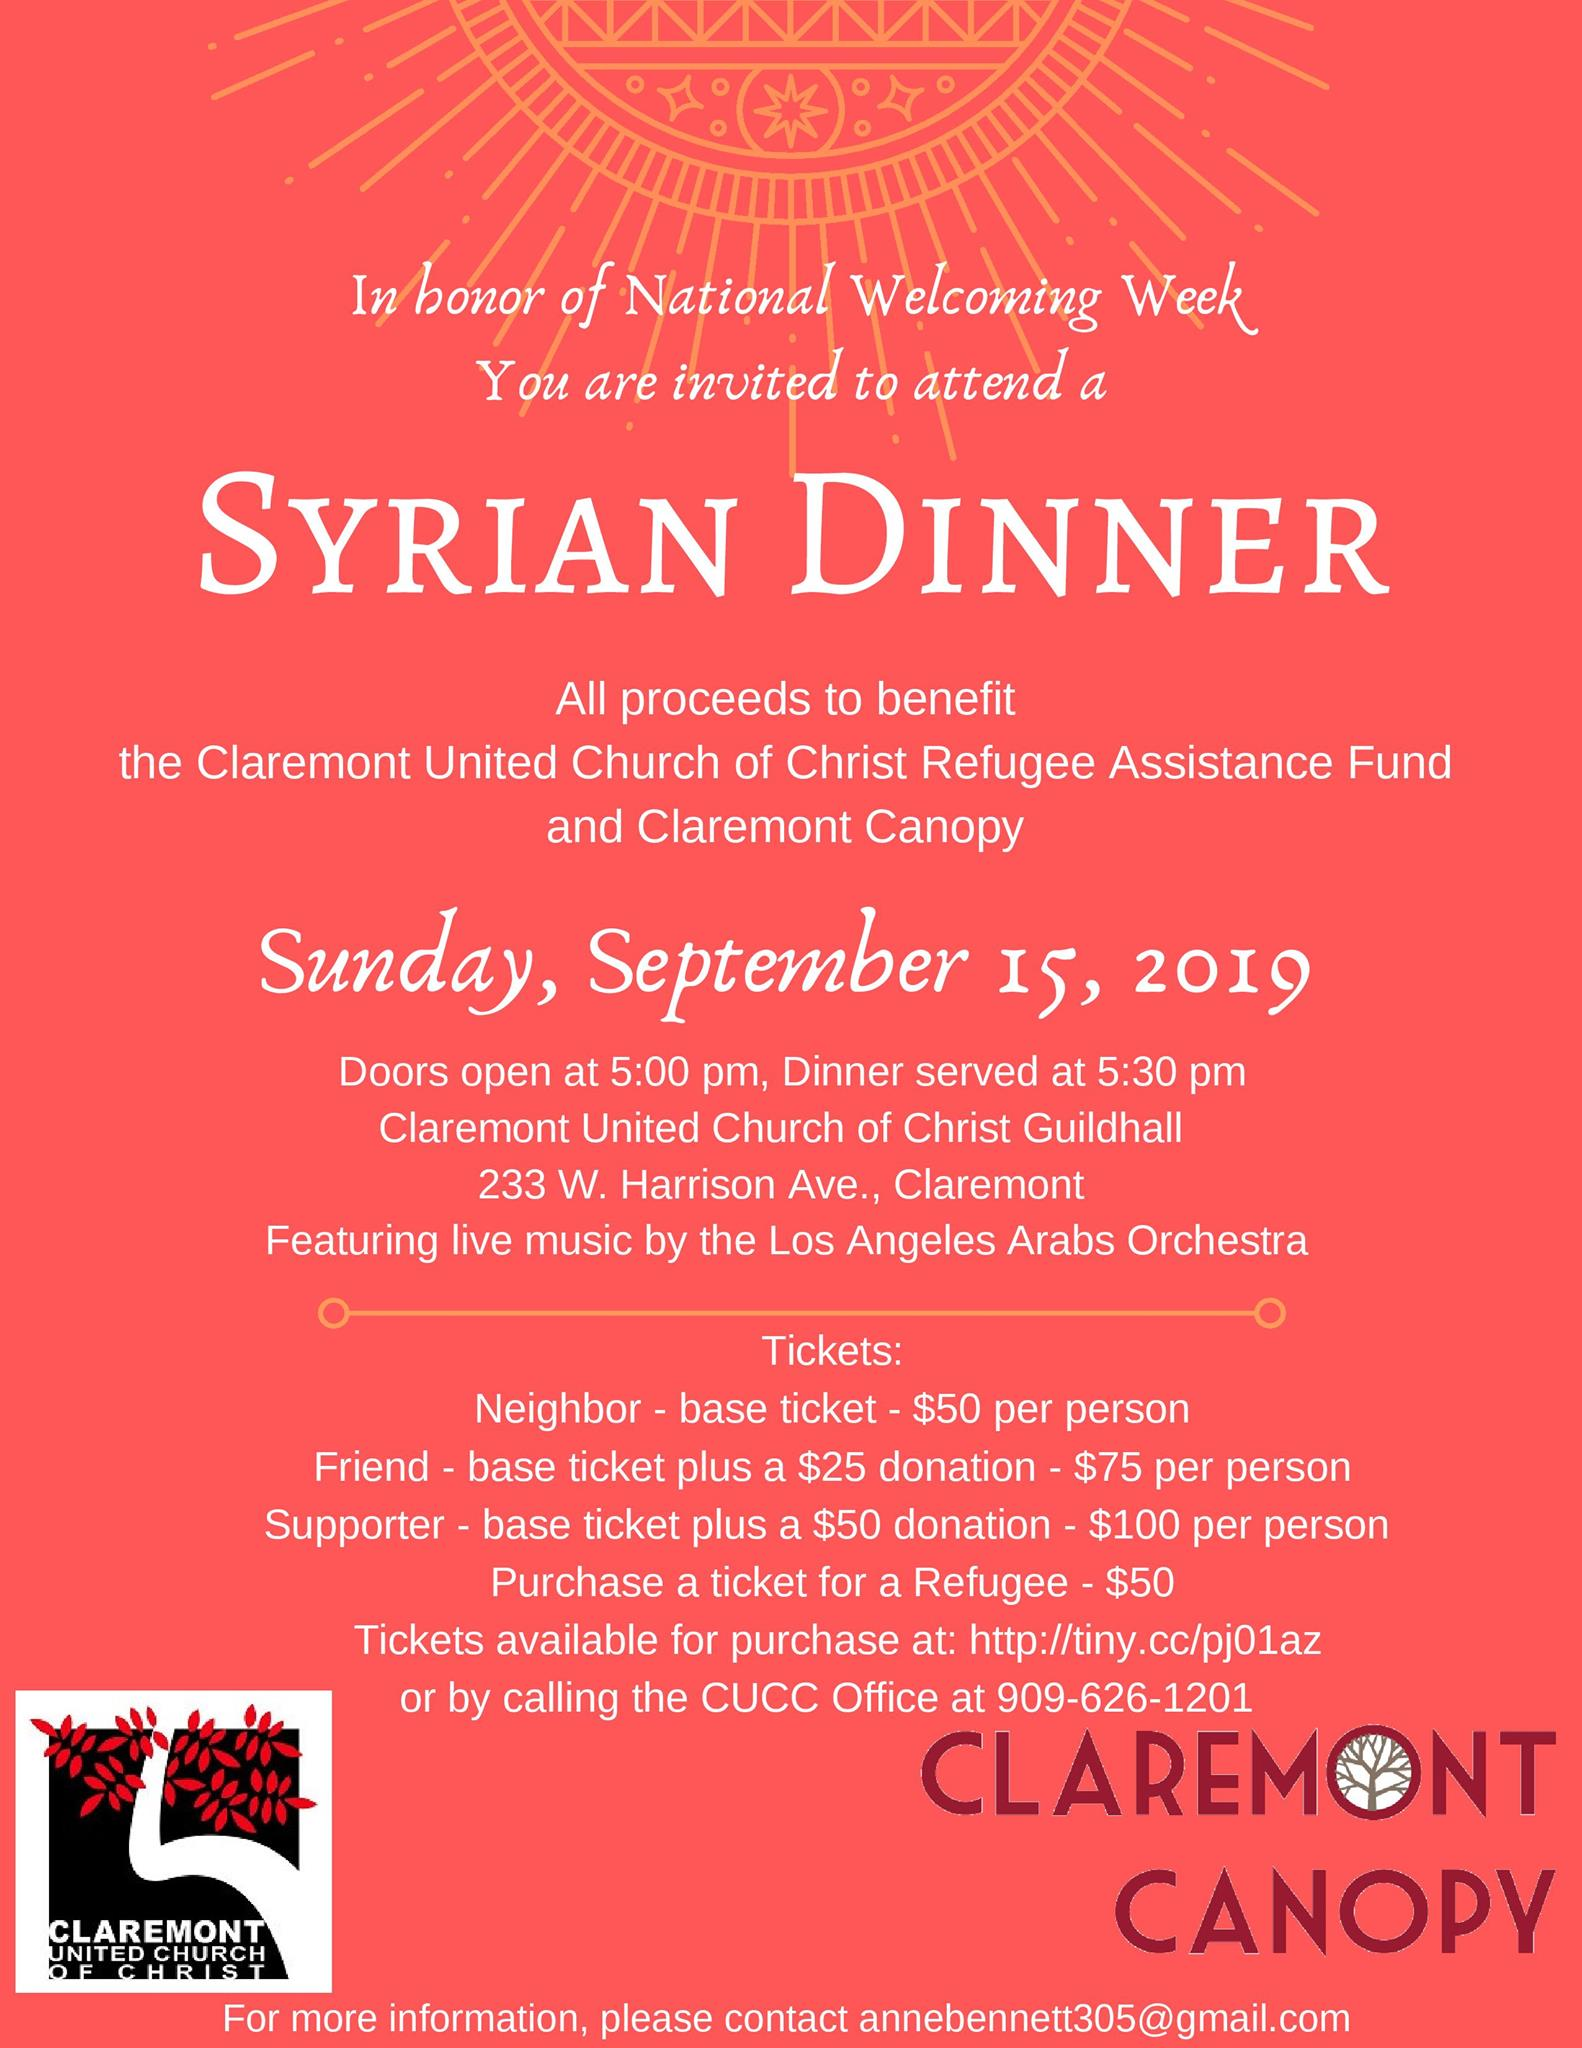 """WELCOMING WEEK 2019! - Our friends at Claremont United Church of Christ are participating in Welcoming America's National """"Welcoming Week."""" A time where communities bring together immigrants and those born within their countries in a spirit of unity to build strong connections across their communities and affirm the benefits of welcoming everyone. Join us September 15, for a homemade Syrian meal and live Arabic music provided by the Los Angeles Arabs Orchestra! Proceeds from ticket sales will go to the CUCC refugee assistance fund and Claremont Canopy."""